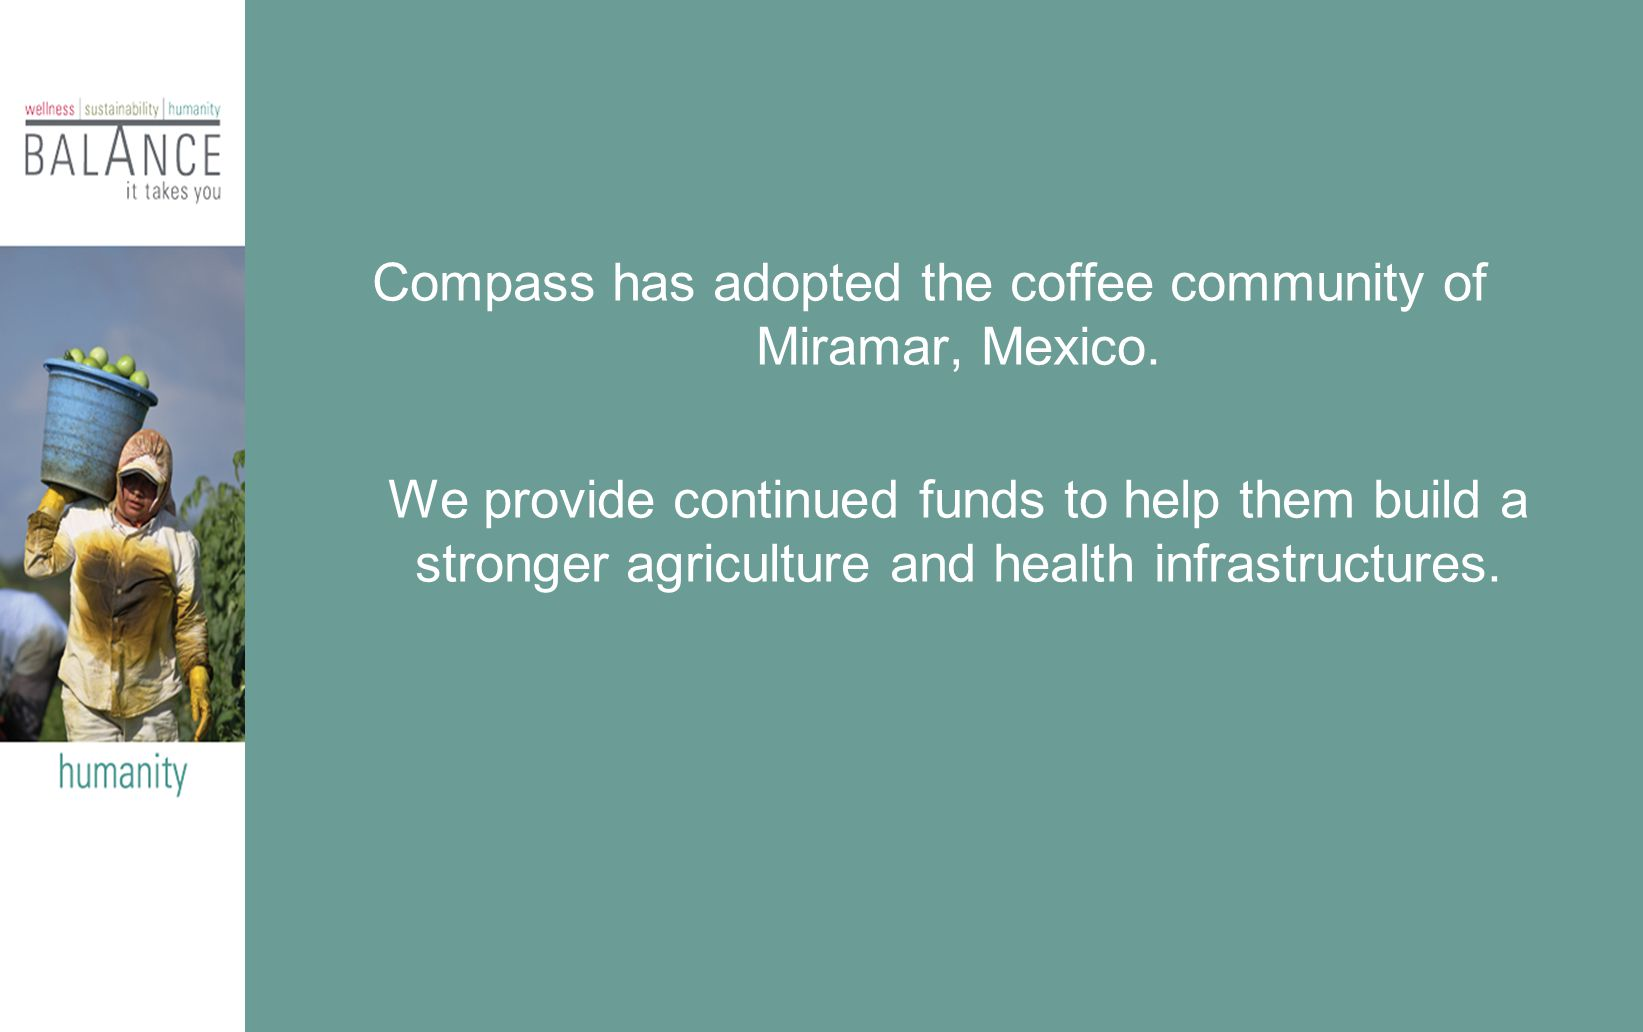 Compass has adopted the coffee community of Miramar, Mexico.